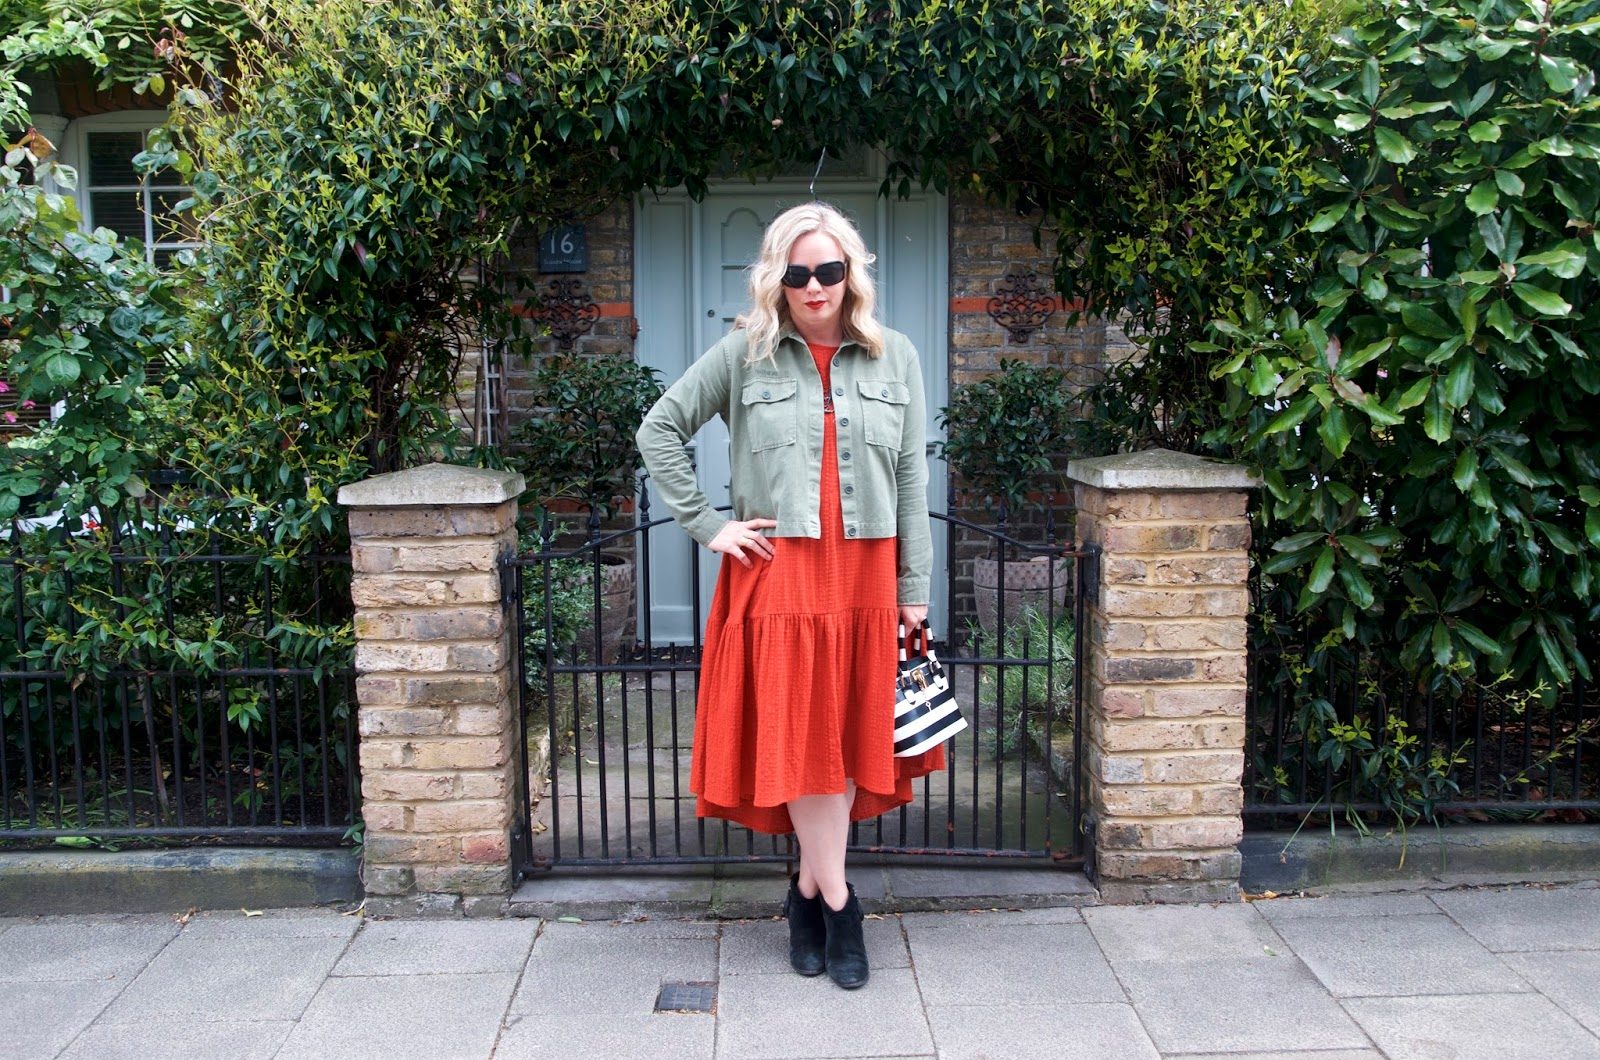 Orange dress, green jacket and striped bag